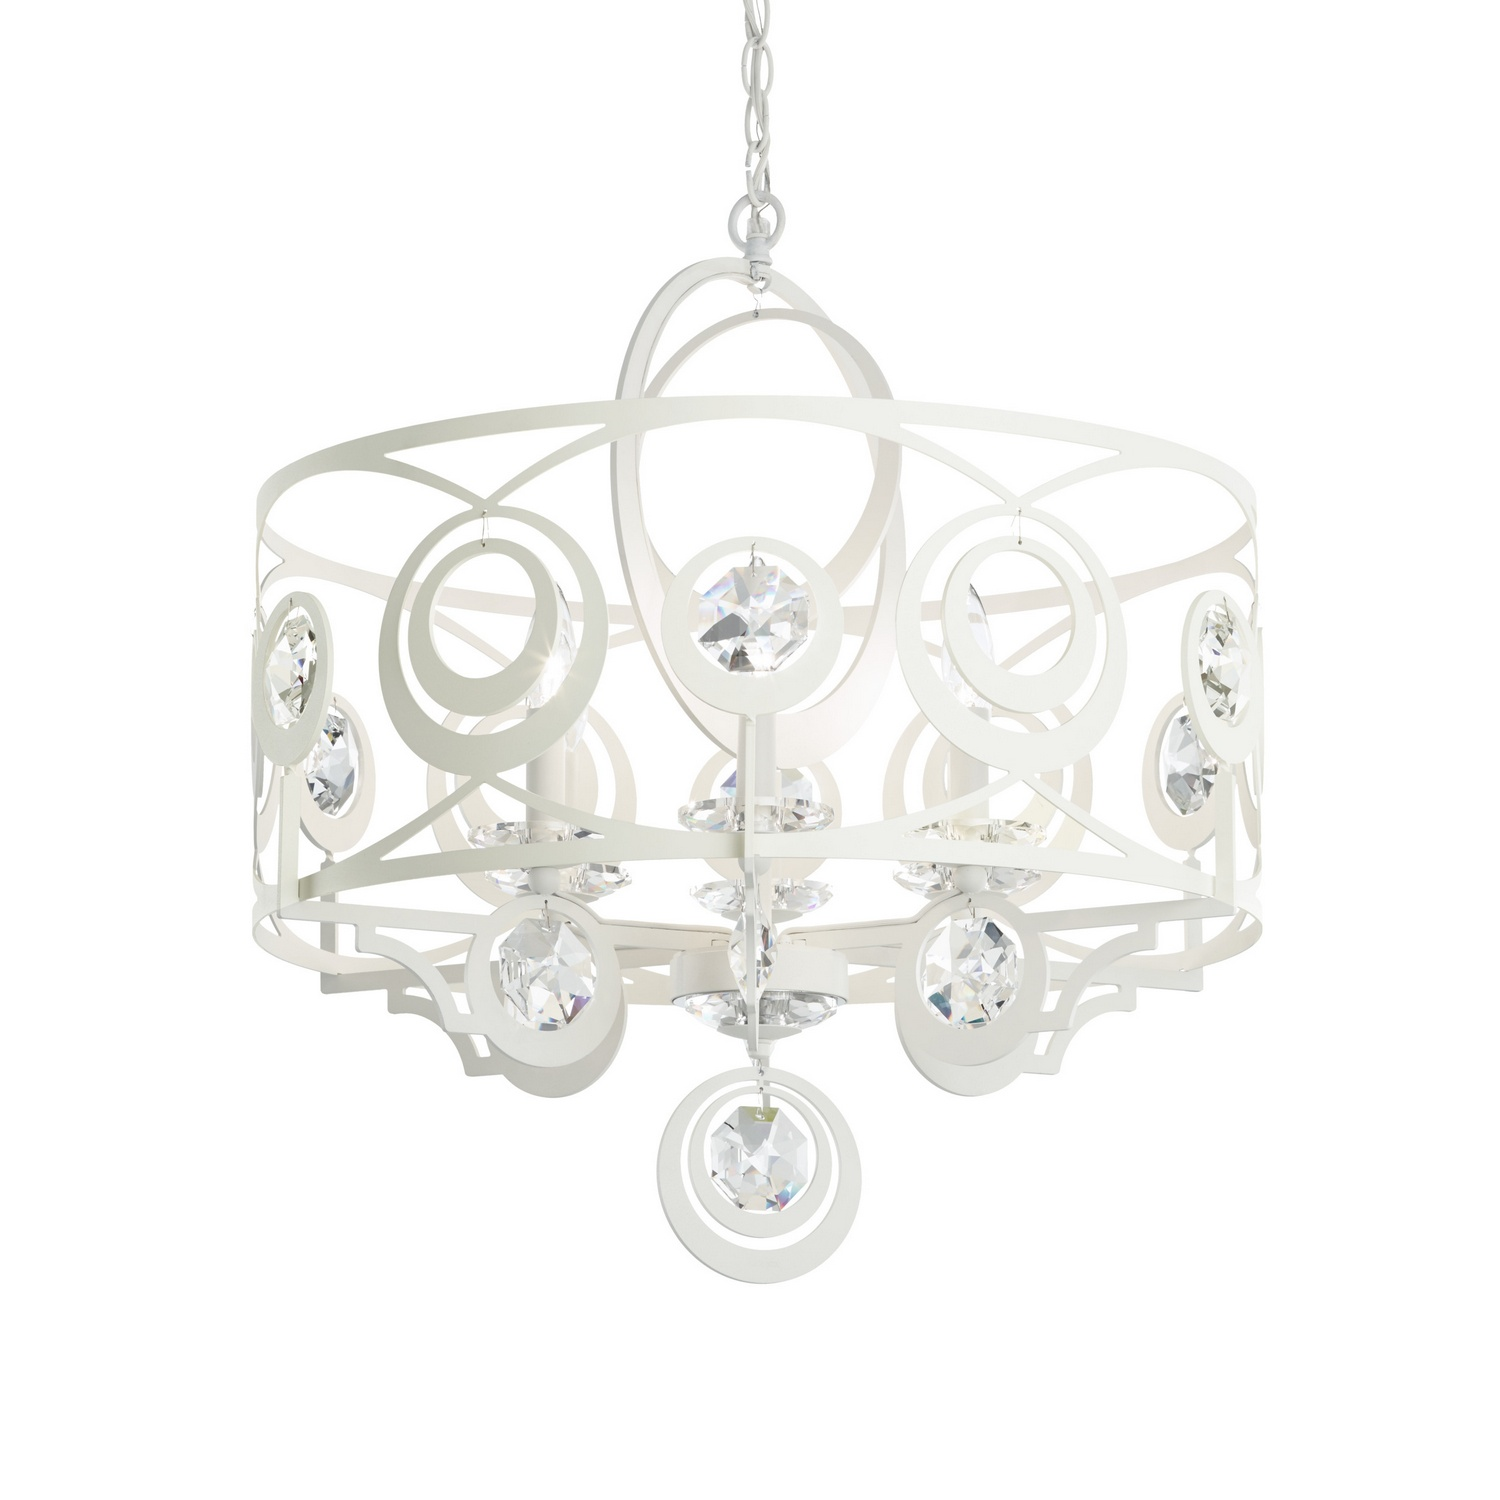 Schonbek WB1006 Gwynn Chandelier in White with Swarovski Crystal